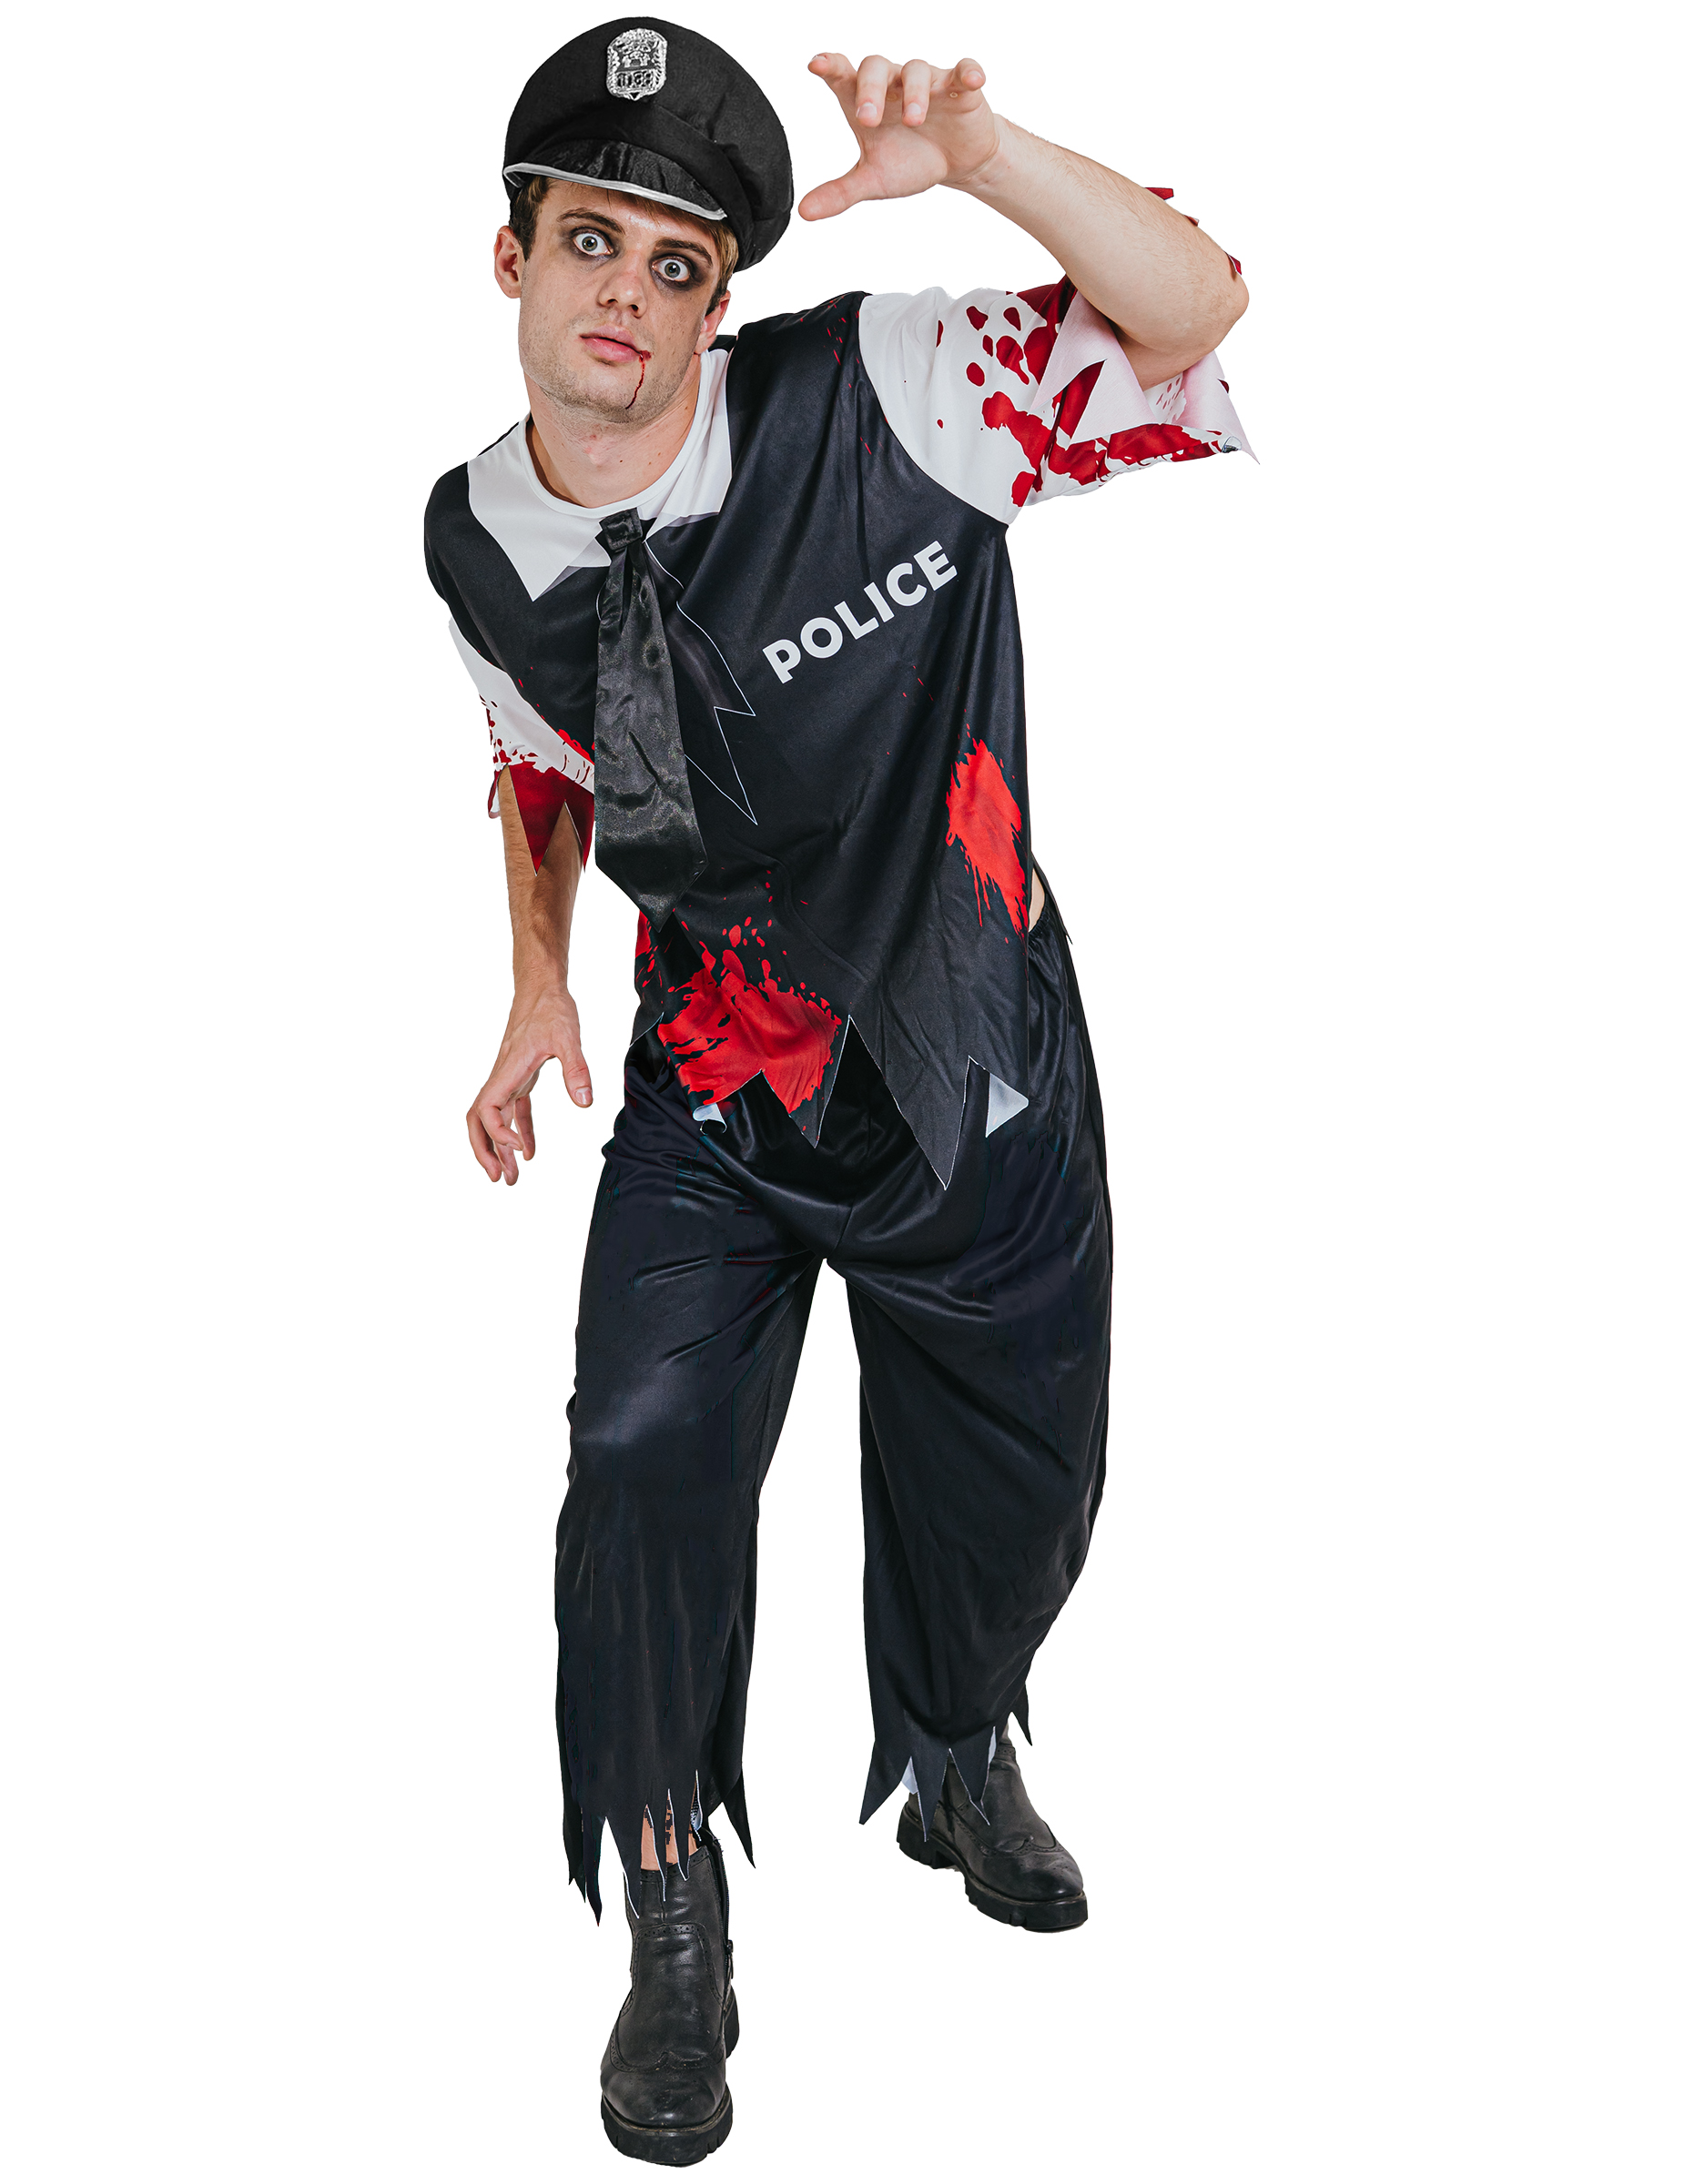 Costumi Halloween Adulti.Costume Poliziotto Zombie Adulto Halloween